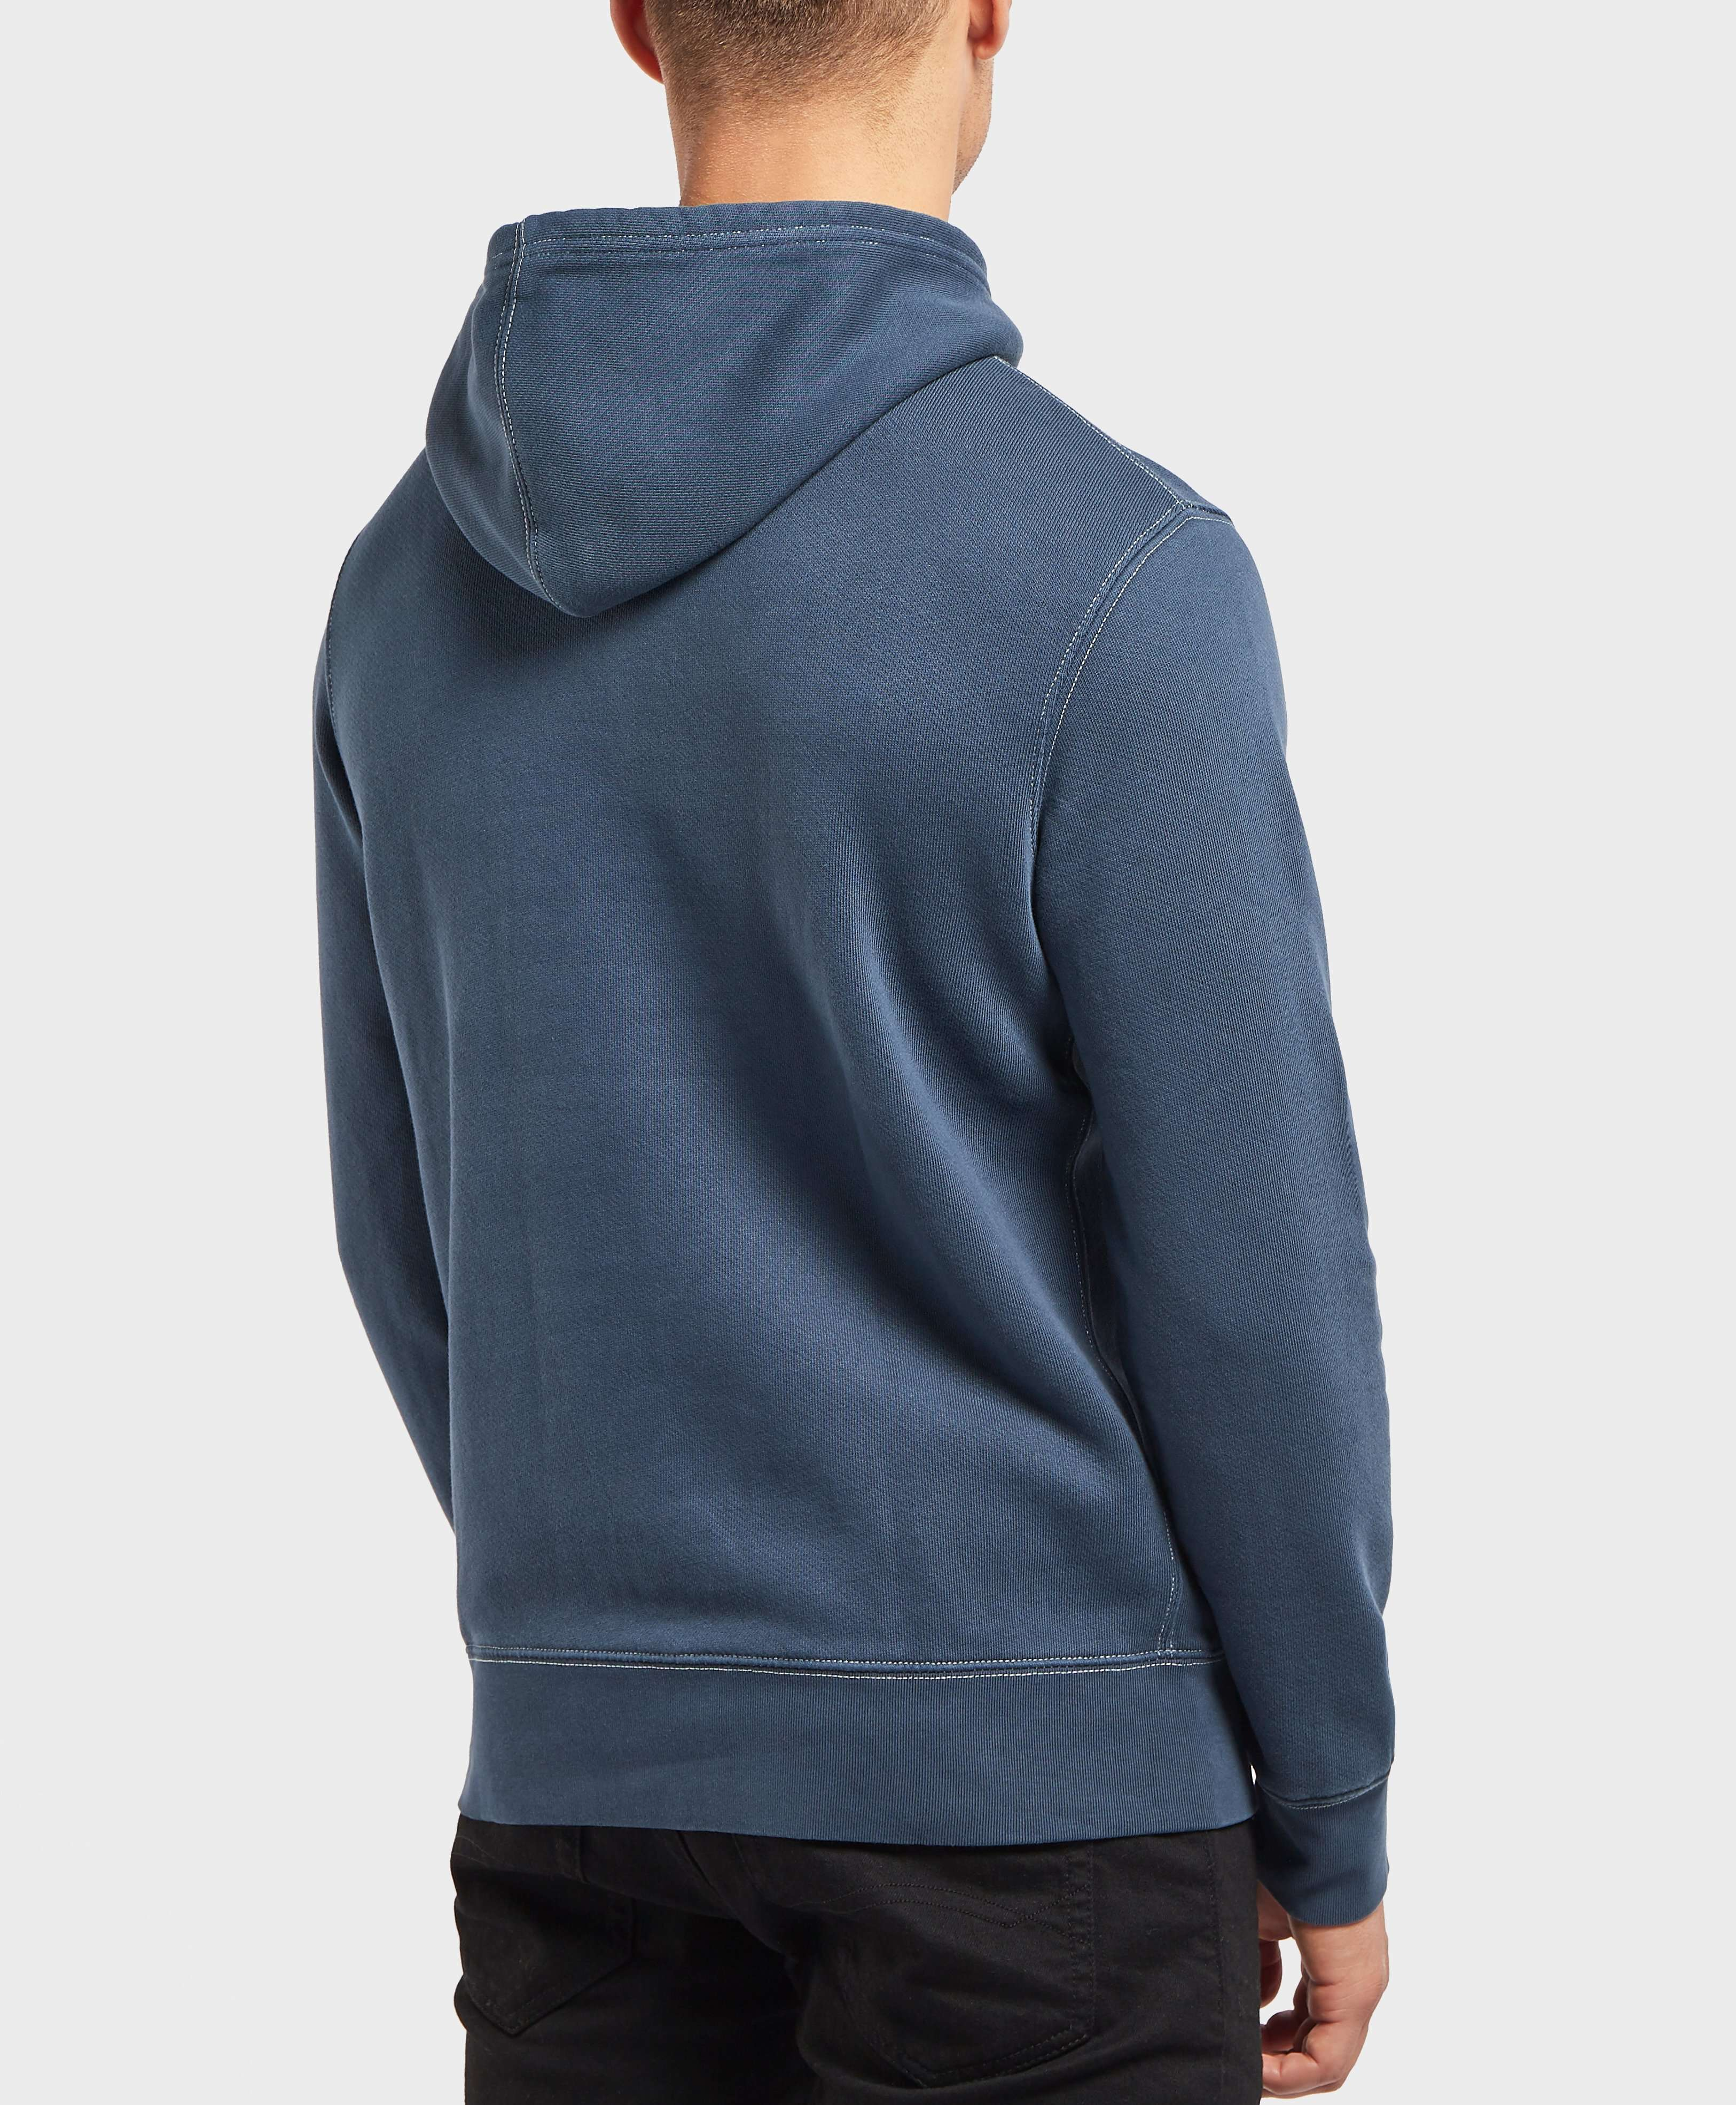 Levis Sports Graphic Overhead Hoodie